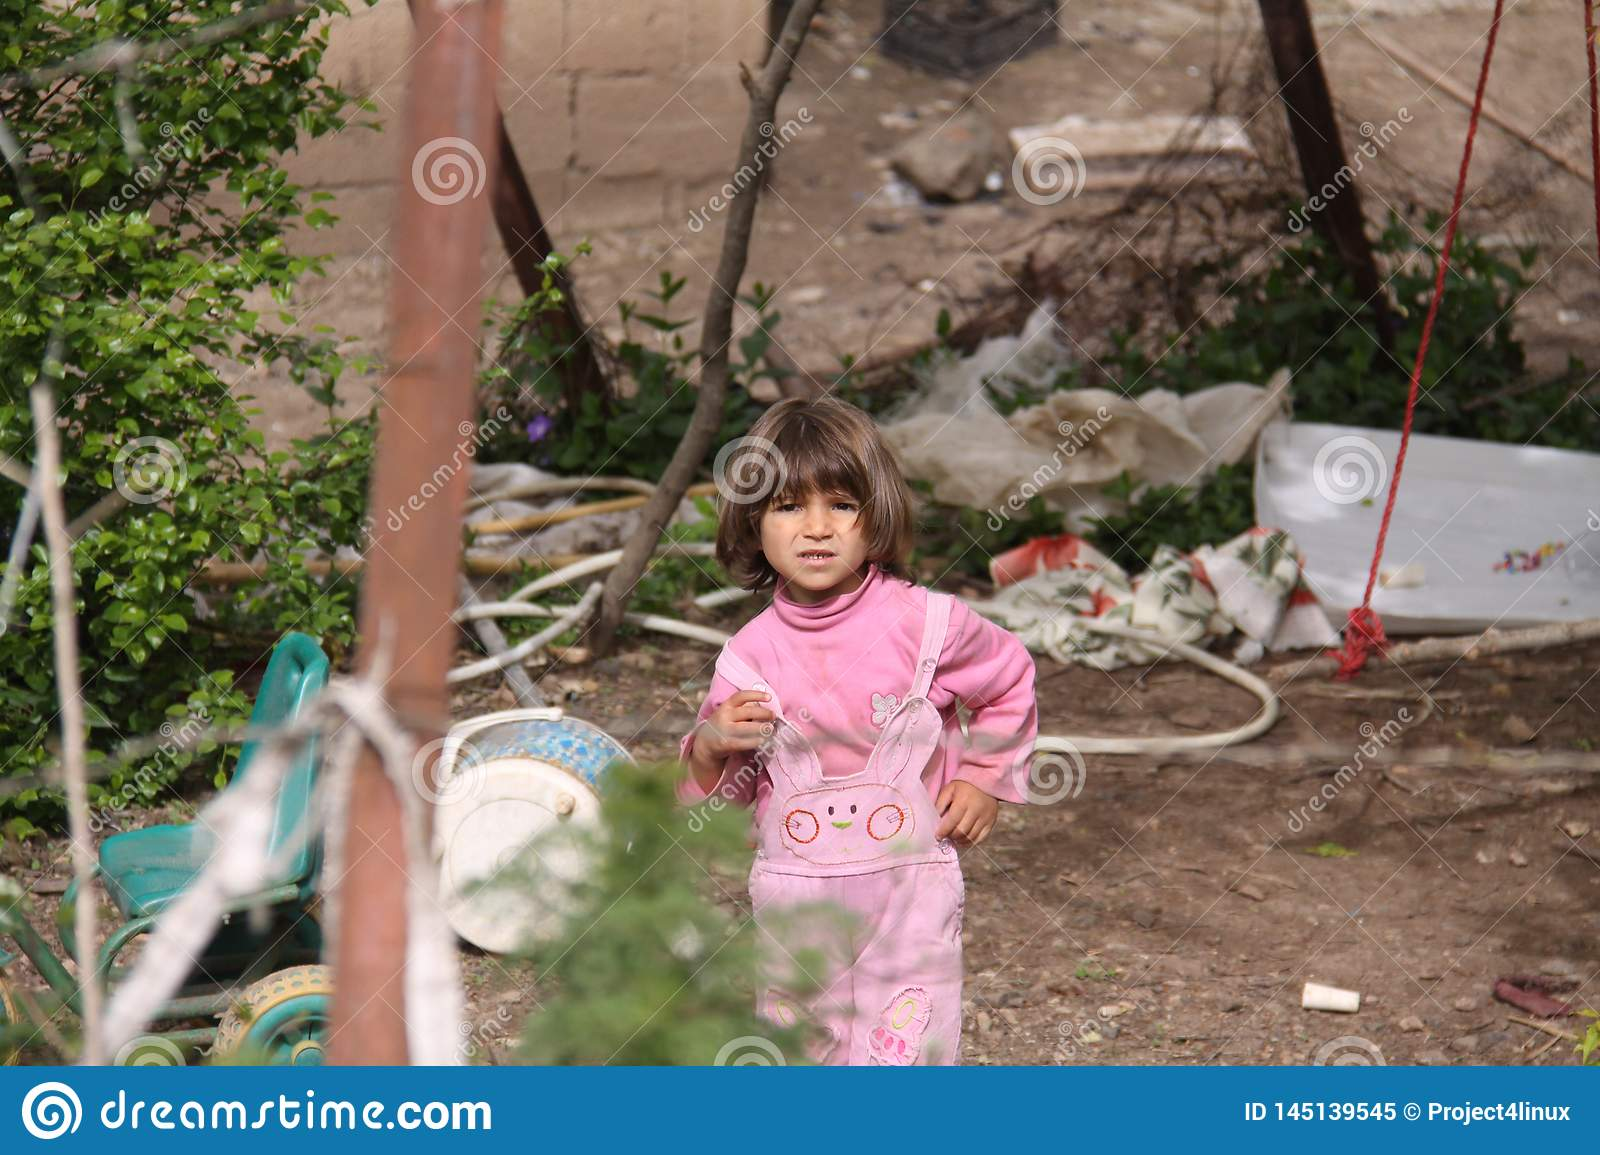 A scary little girl outside the city, A swing, different equipment and plants are visible in background, Iran, Gilan